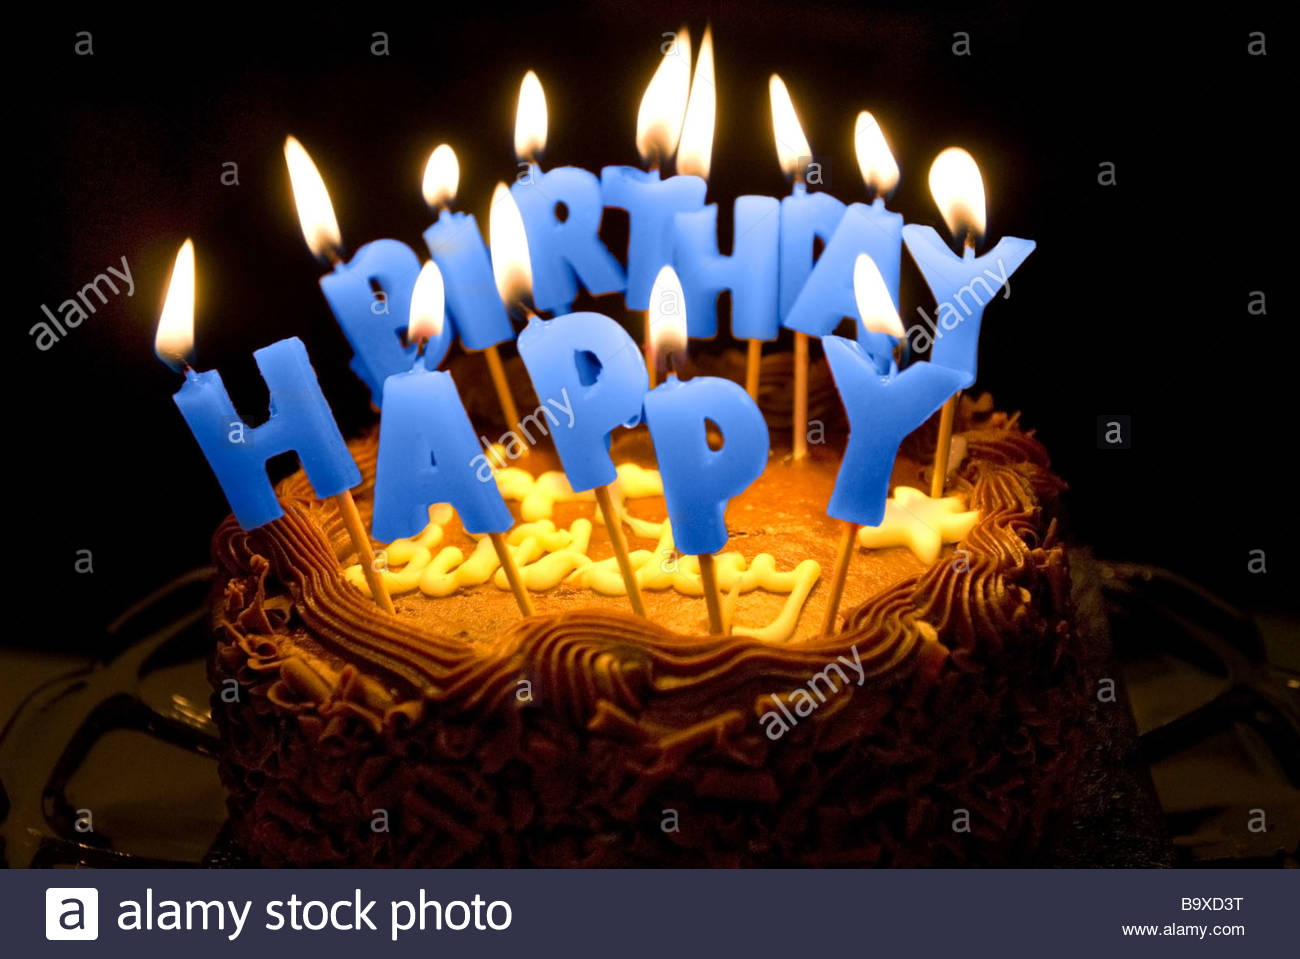 Birthday Cakes With Candles A Birthday Cake With Lighted Letter Candles Spelling Happy Birthday